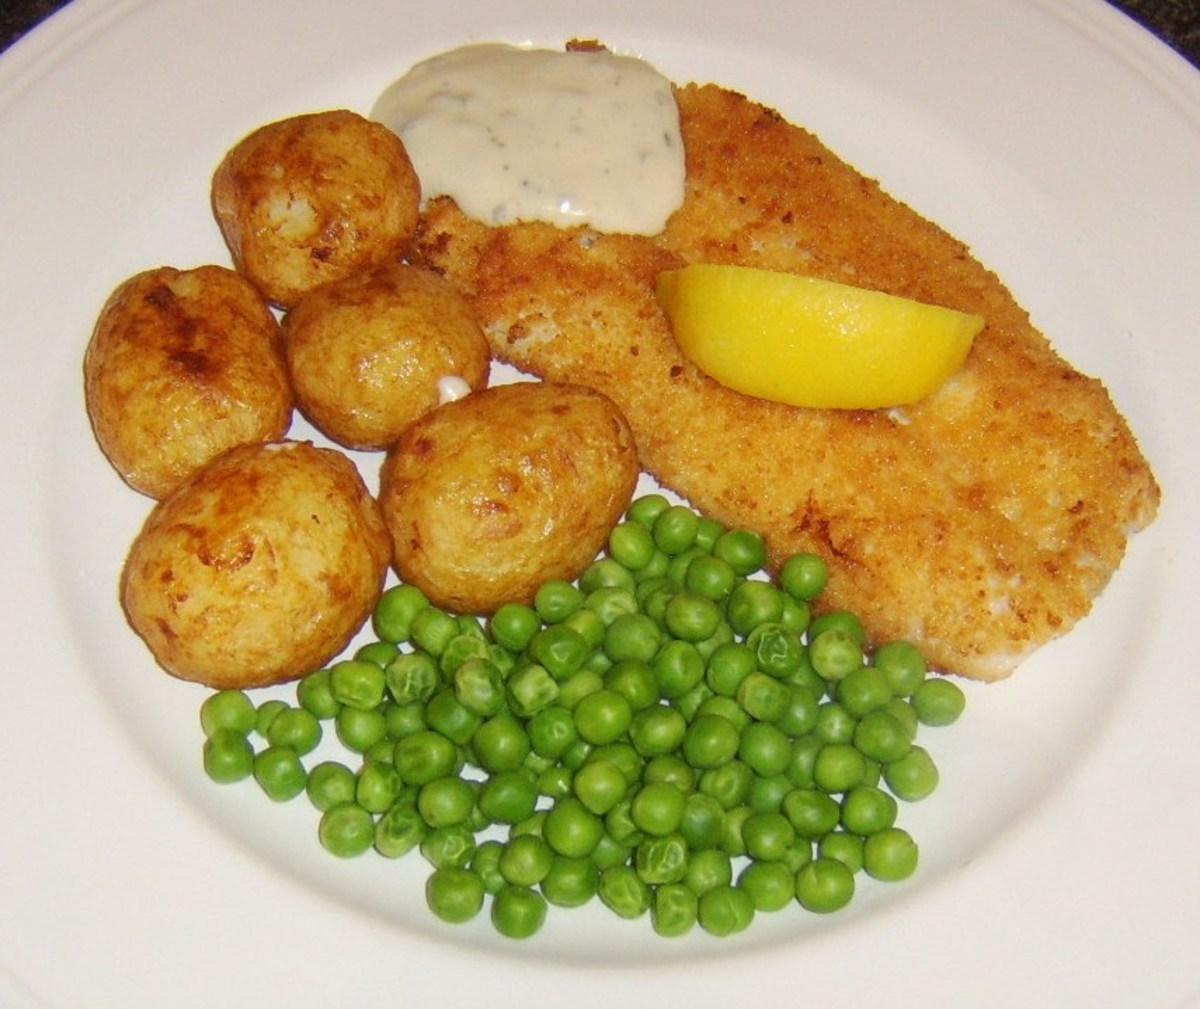 Breaded and pan fried haddock with roast potatoes and tartare sauce is one of the recipes found on this page